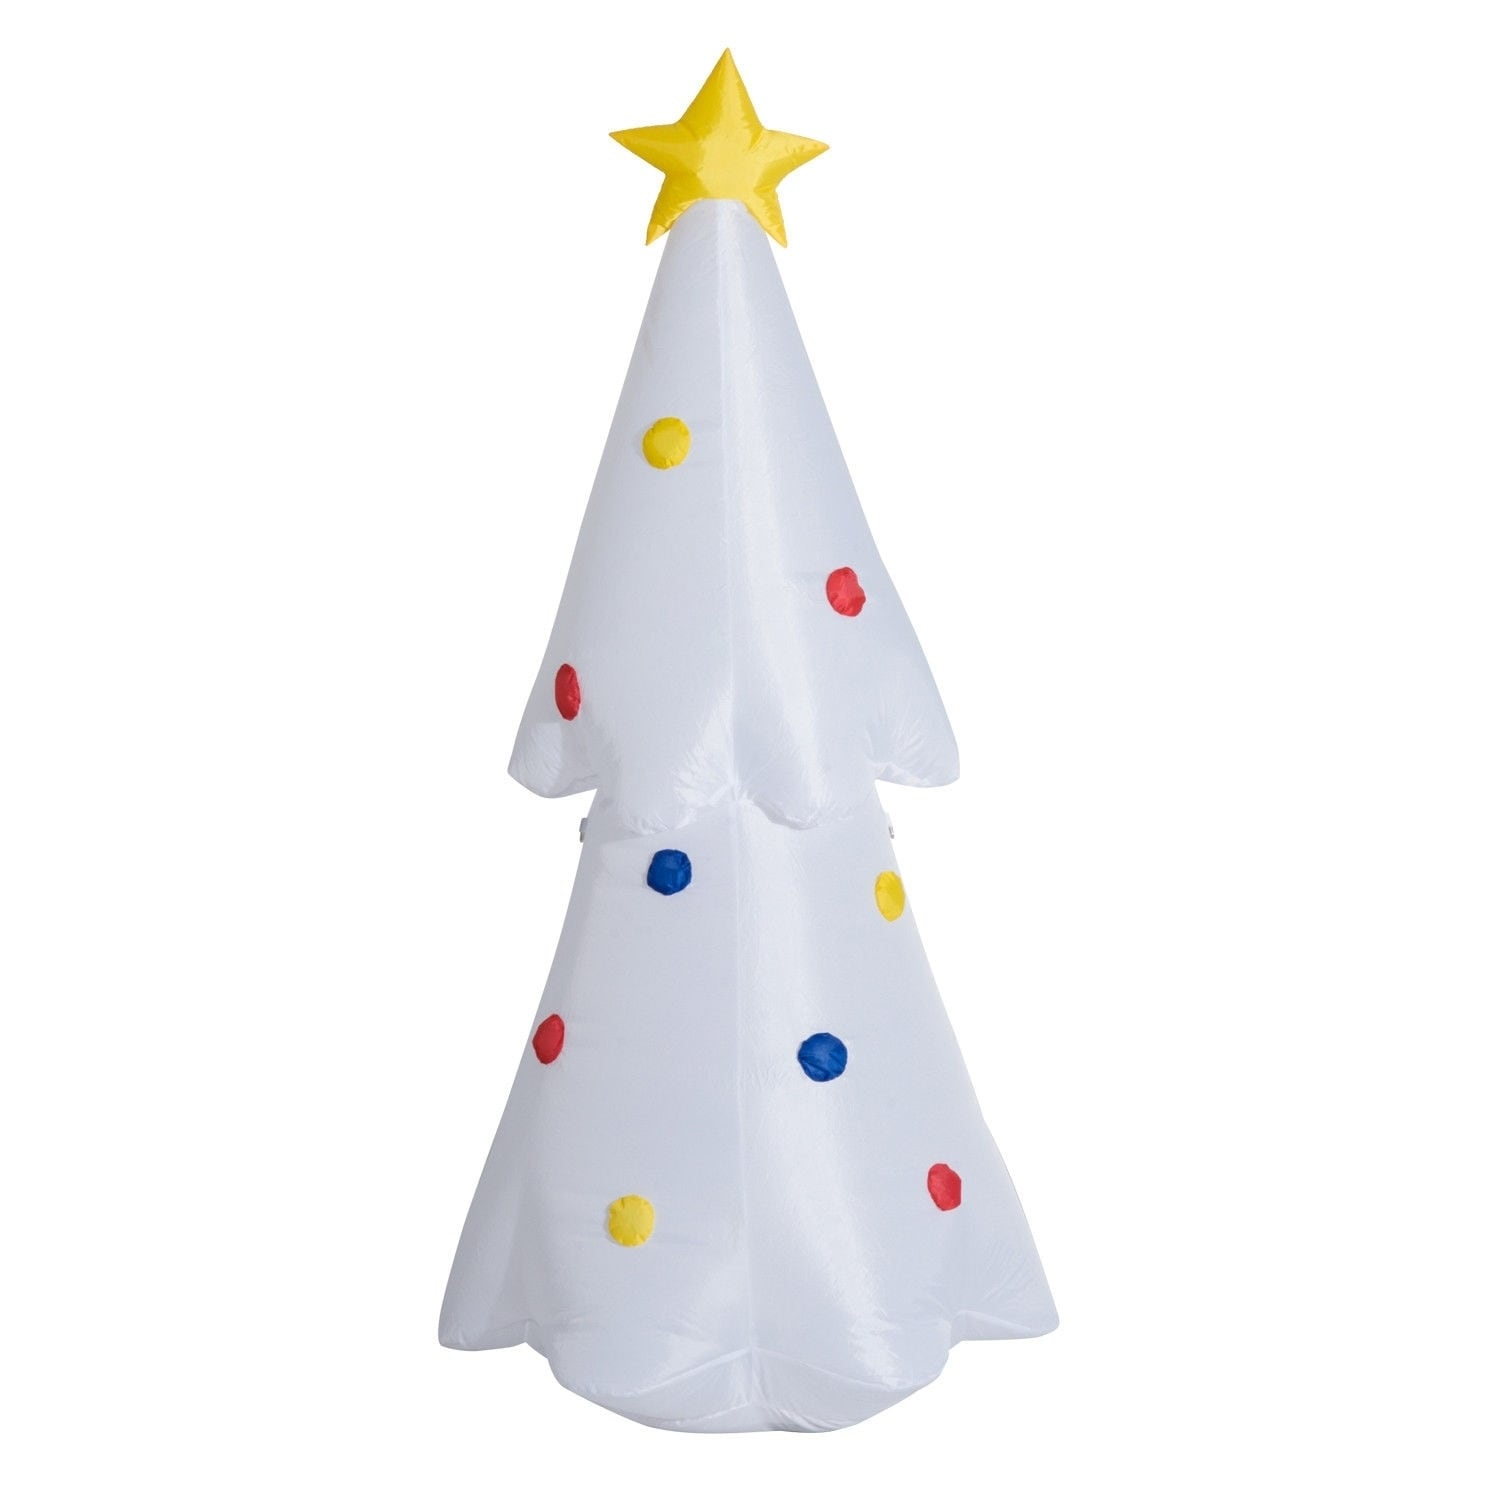 Christmas Tree Inflatable.Homcom 6 Ft Outdoor Lighted Airblown Inflatable Christmas Lawn Decoration Christmas Tree With Star And Multicolor Lights